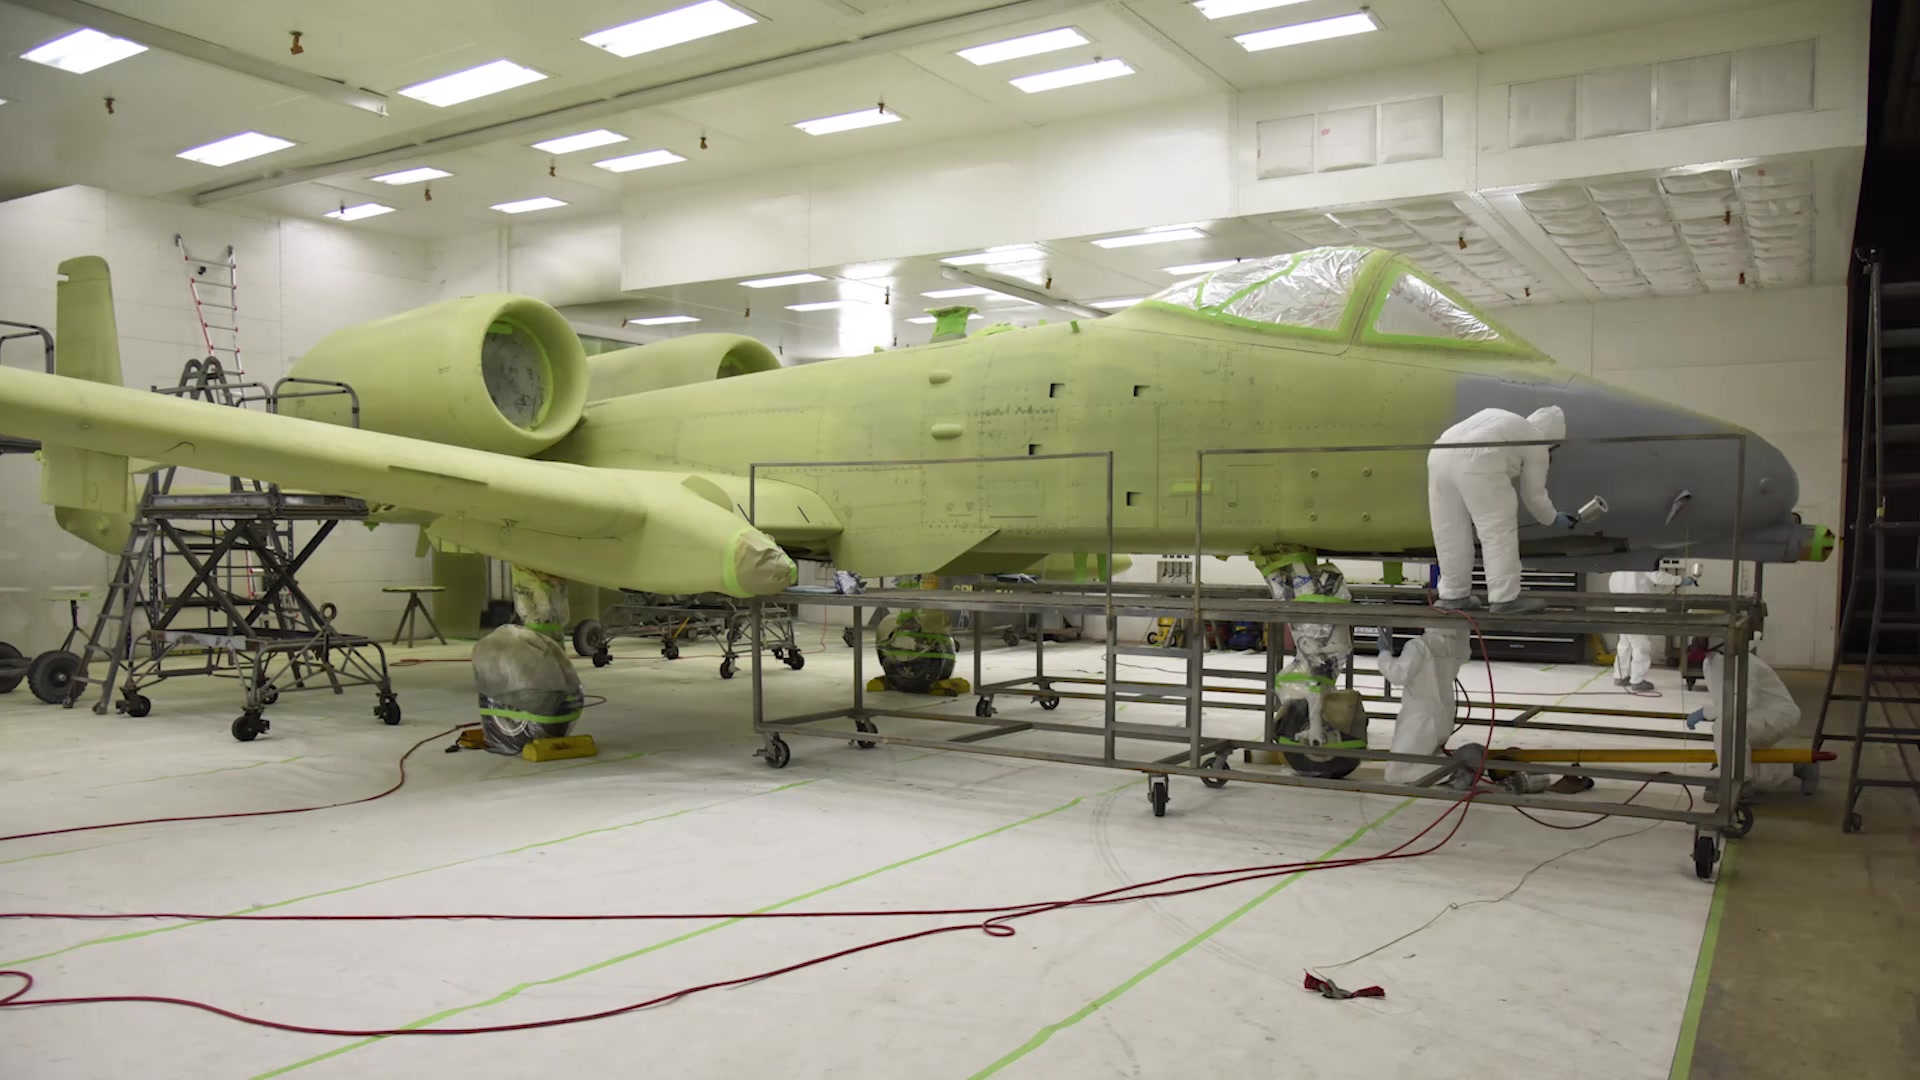 355th Equipment Maintenance Squadron Airmen give an A-10 Thunderbolt II, assigned to the A-10 Demonstration Team, a custom paint job resembling a P-51 Mustang.